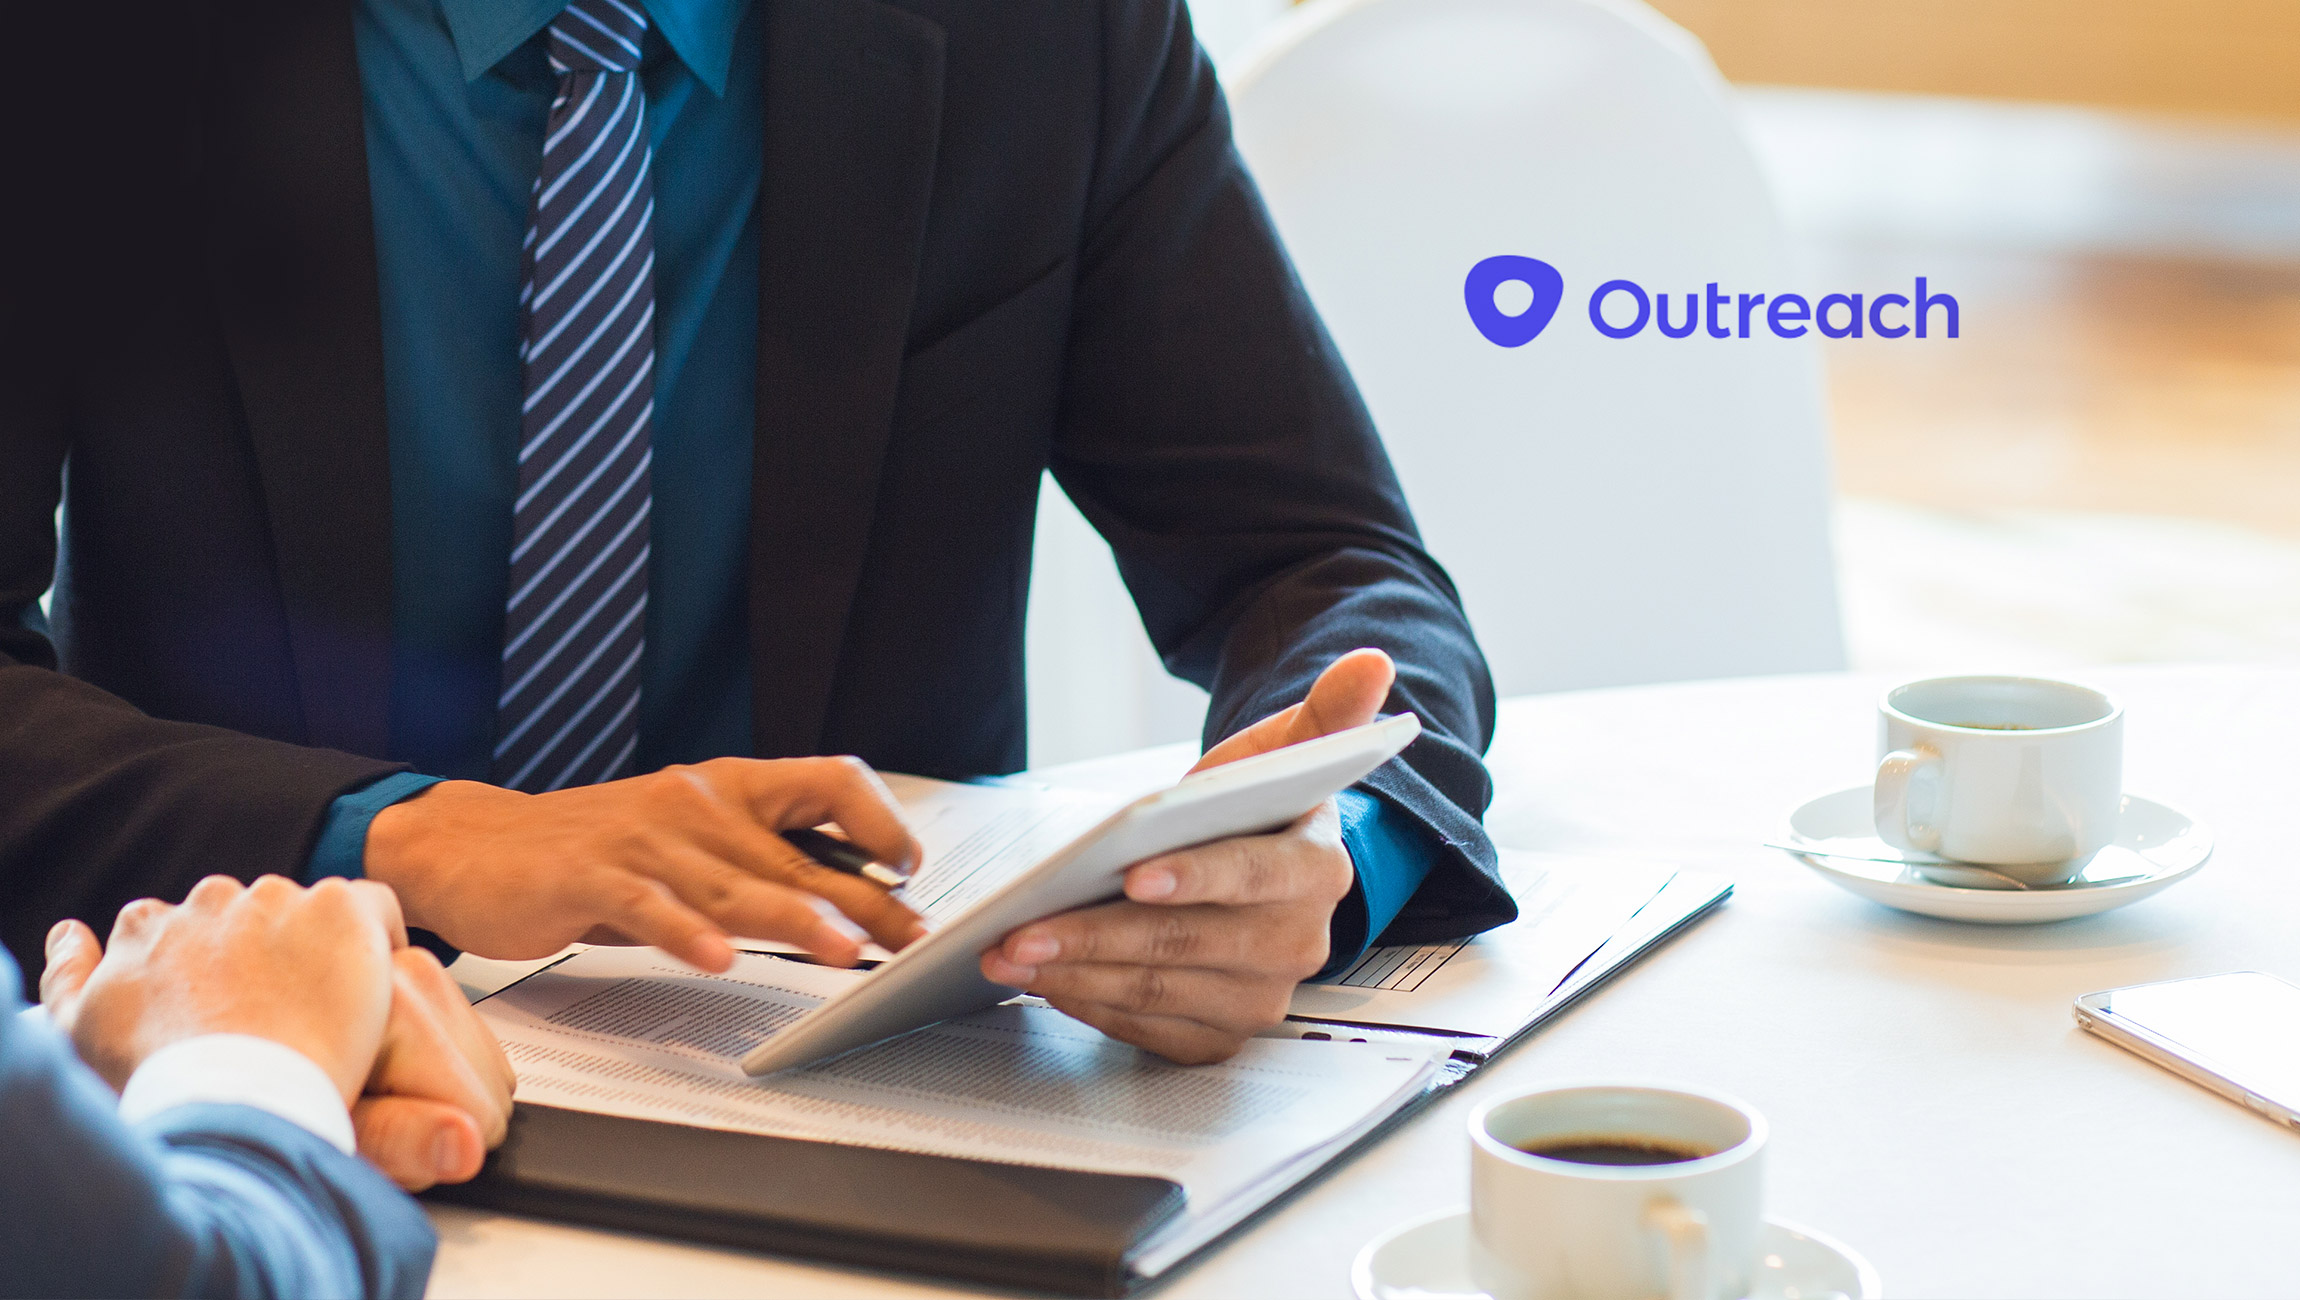 Outreach Recognized as an April 2019 Gartner Peer Insights Customers